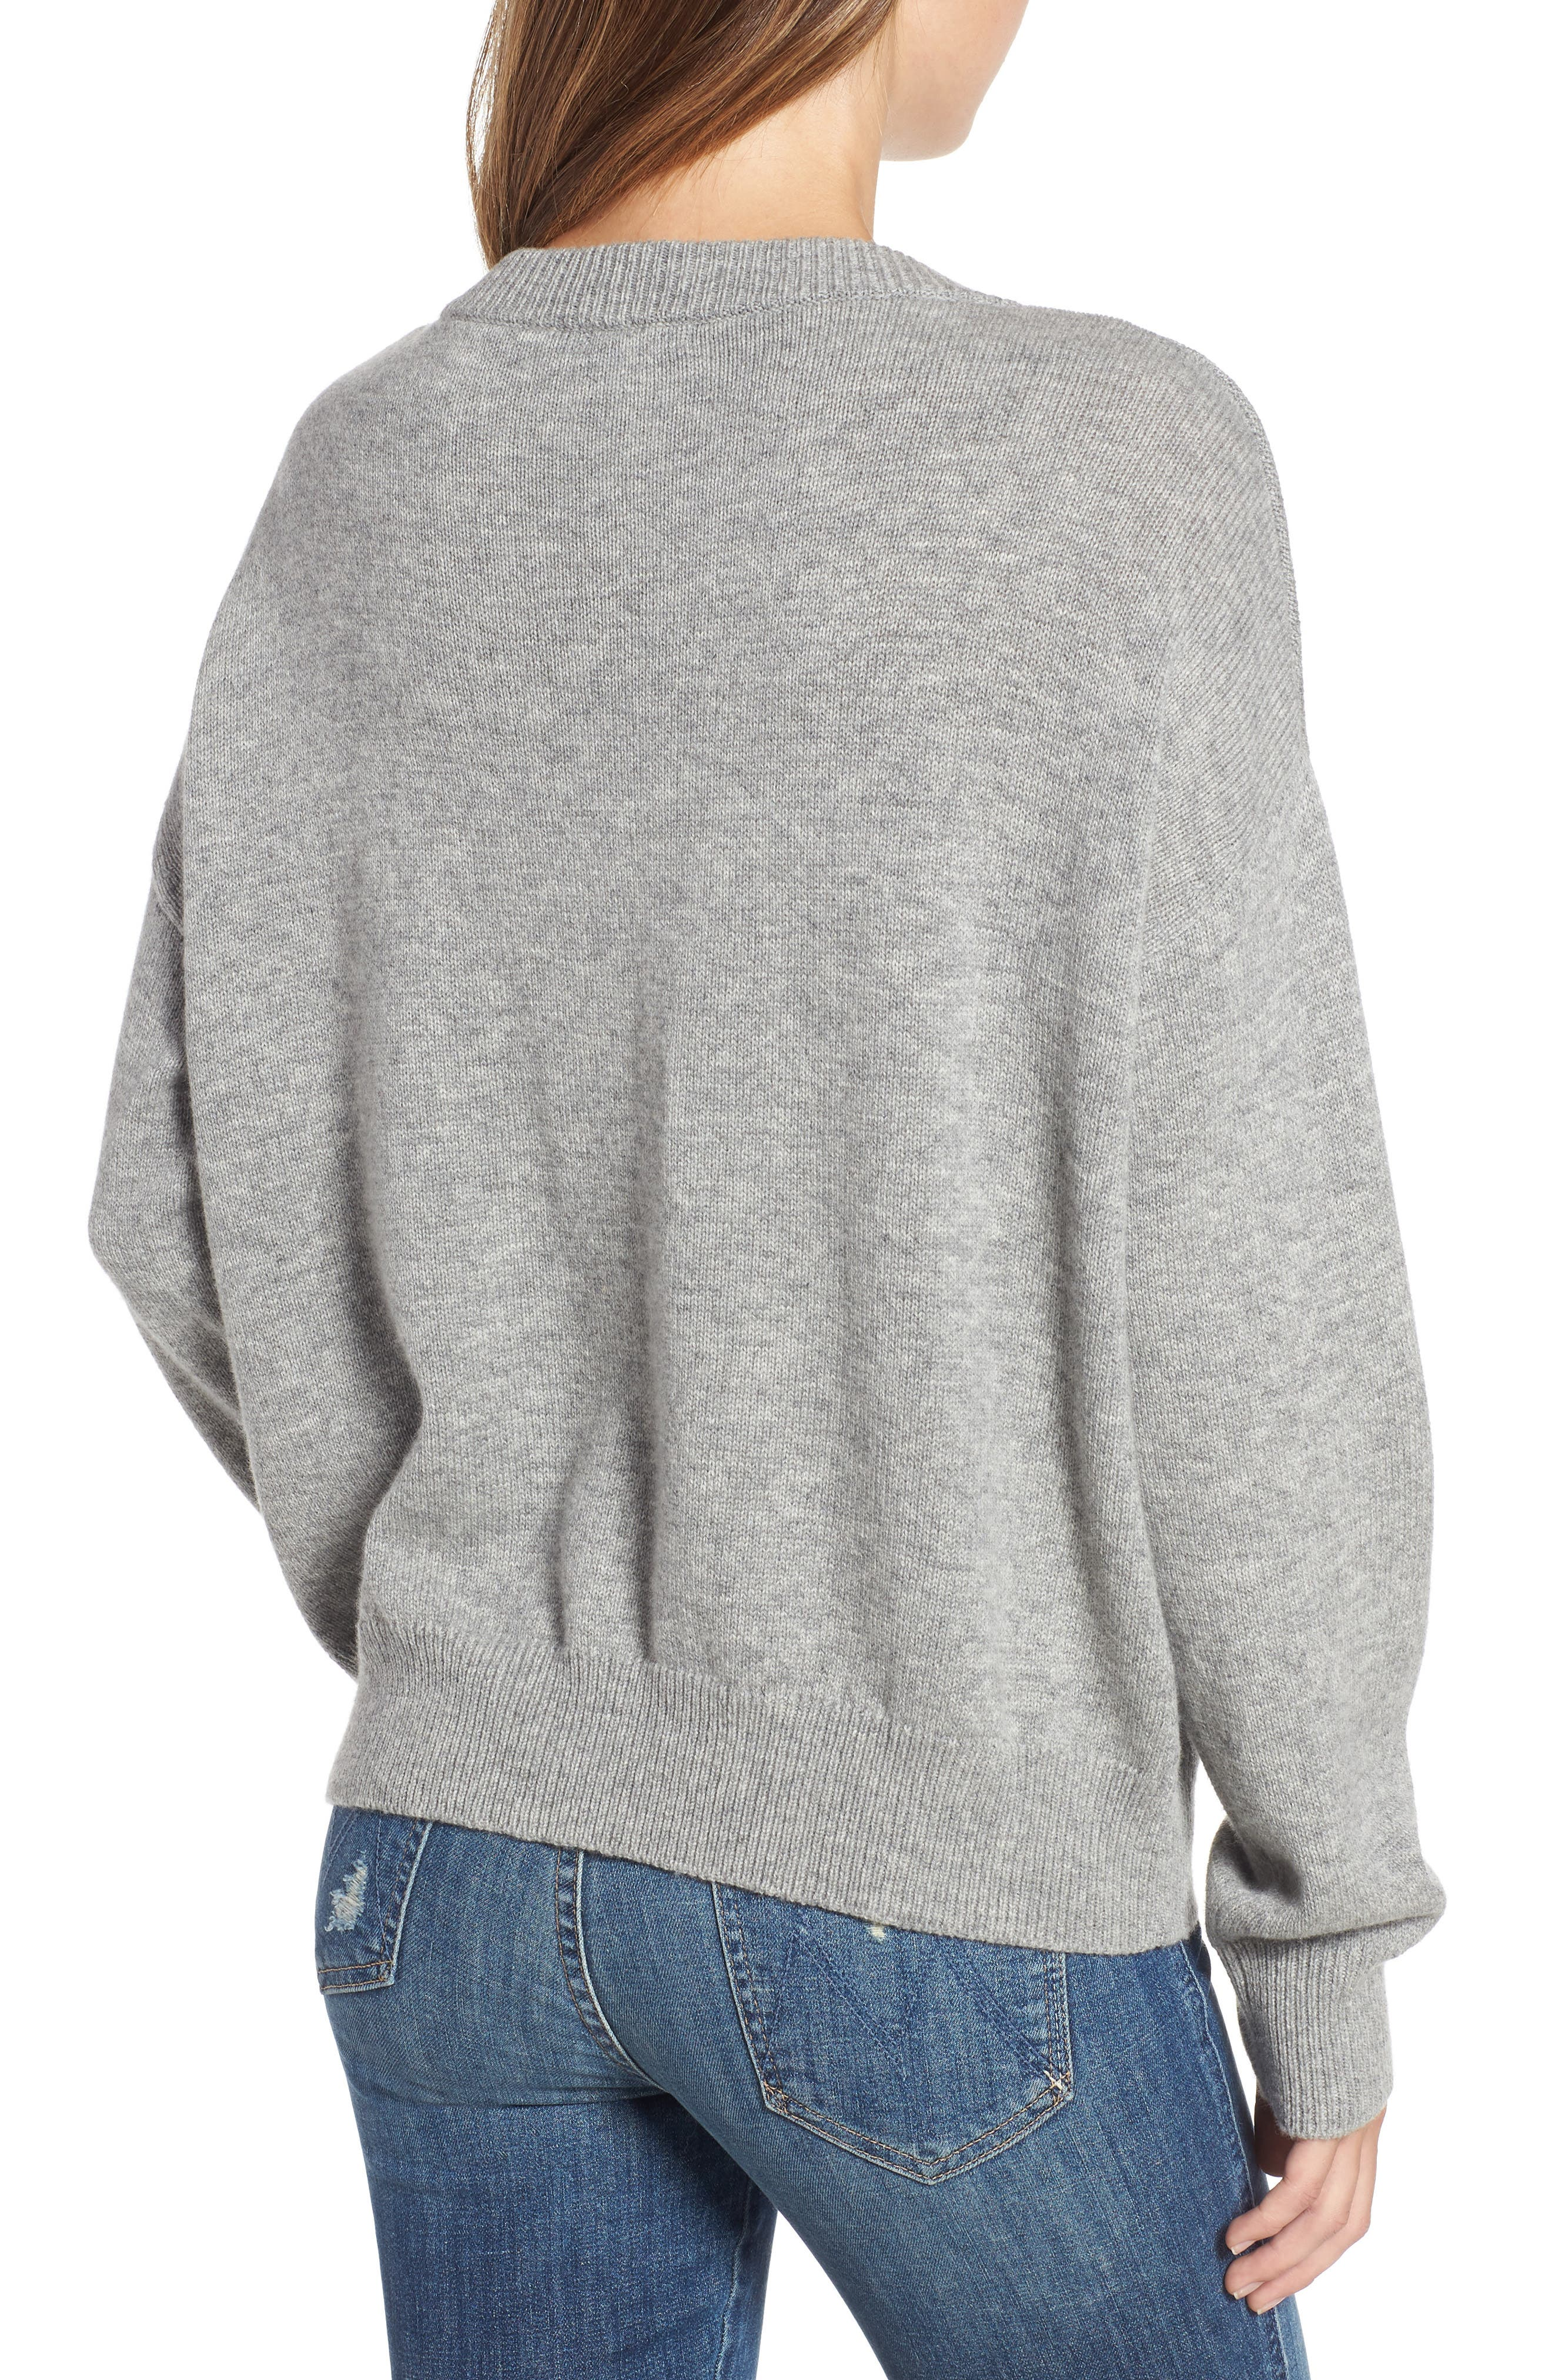 Olivia Lace-Up Sweater,                             Alternate thumbnail 2, color,                             HEATHER GREY